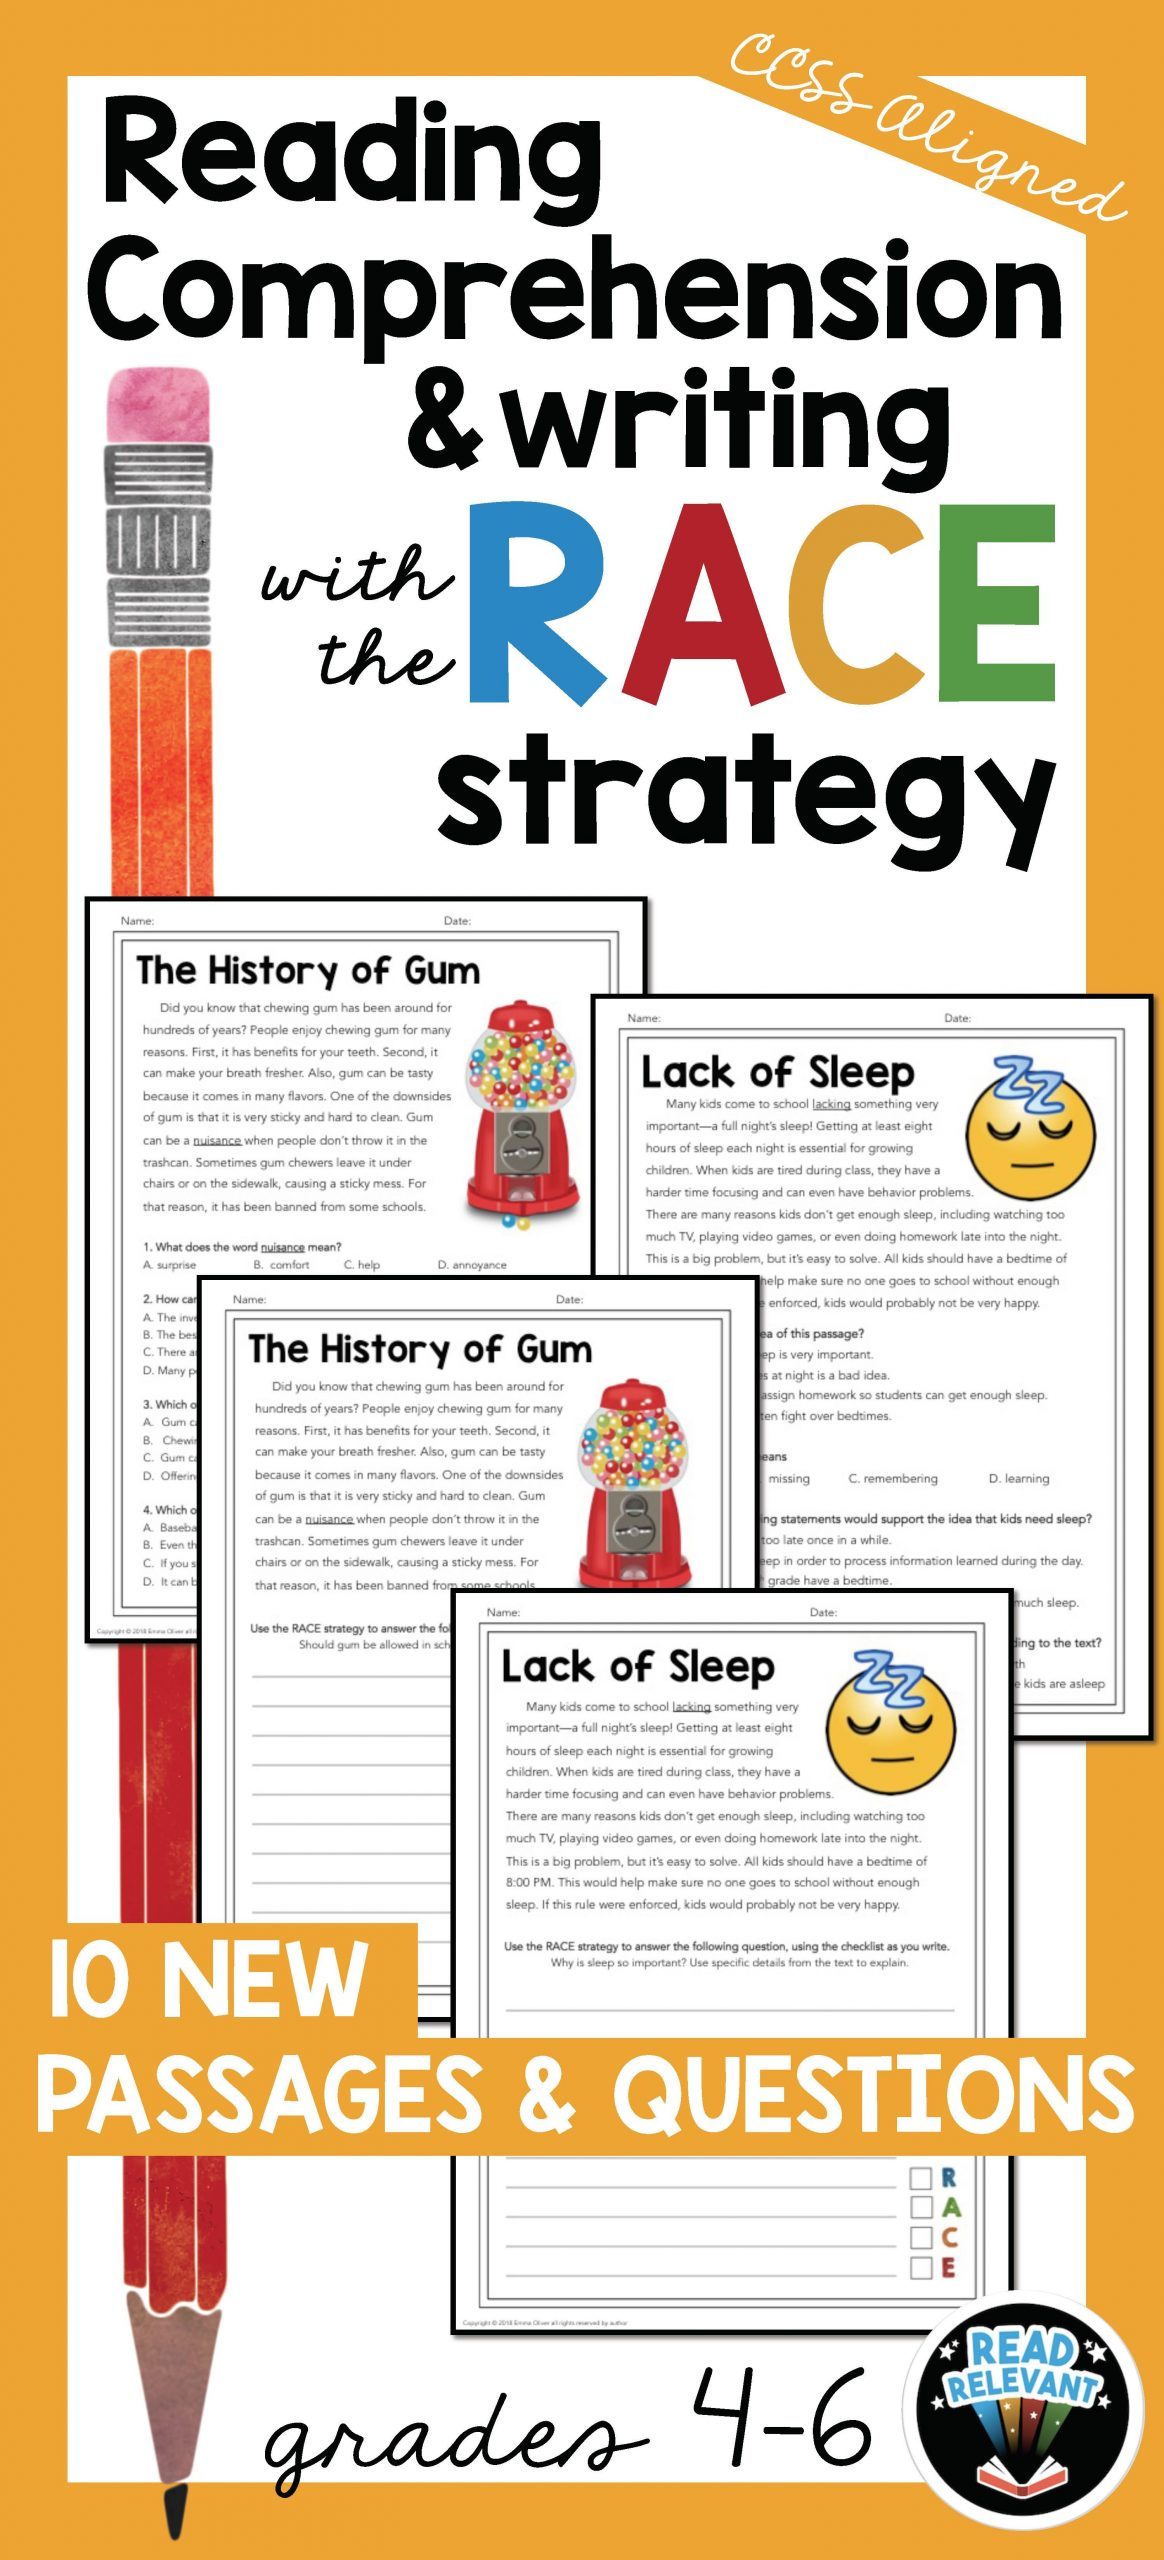 Race Writing Strategy Worksheets Reading Prehension and Writing with the Race Strategy